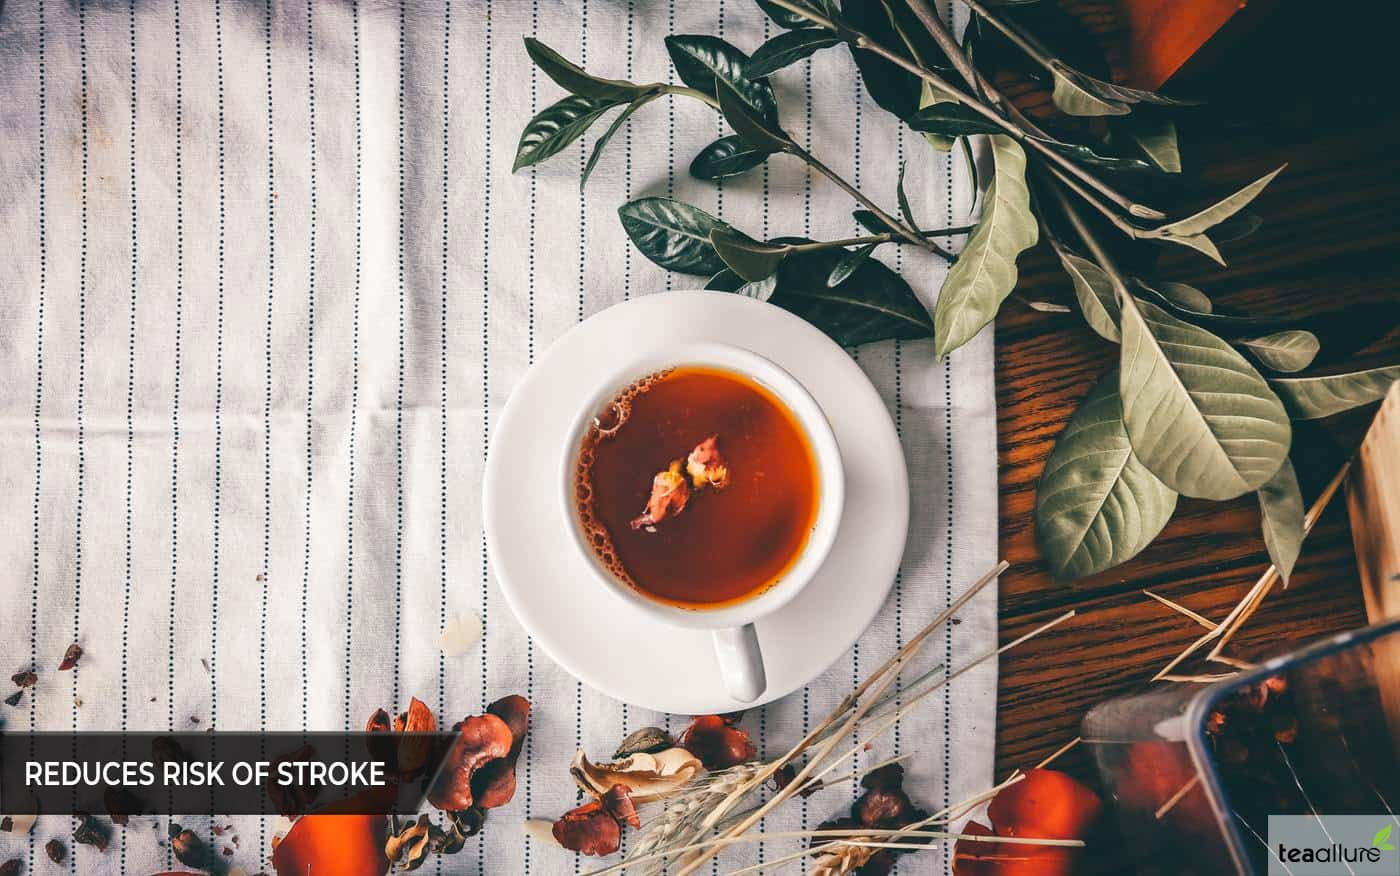 Black tea reduces the risk of stroke